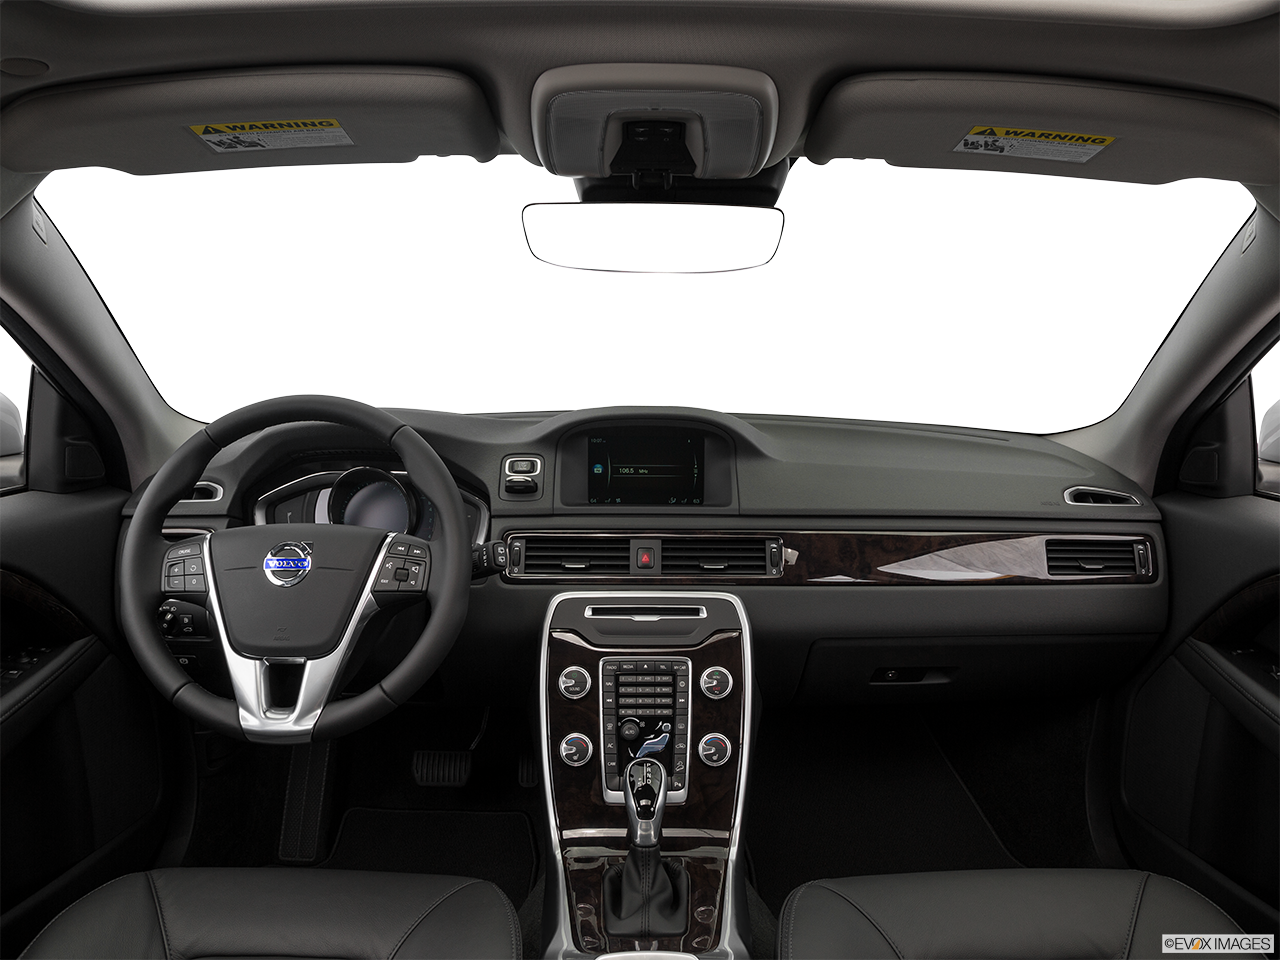 Interior View Of 2016 Volvo XC70 in Los Angeles